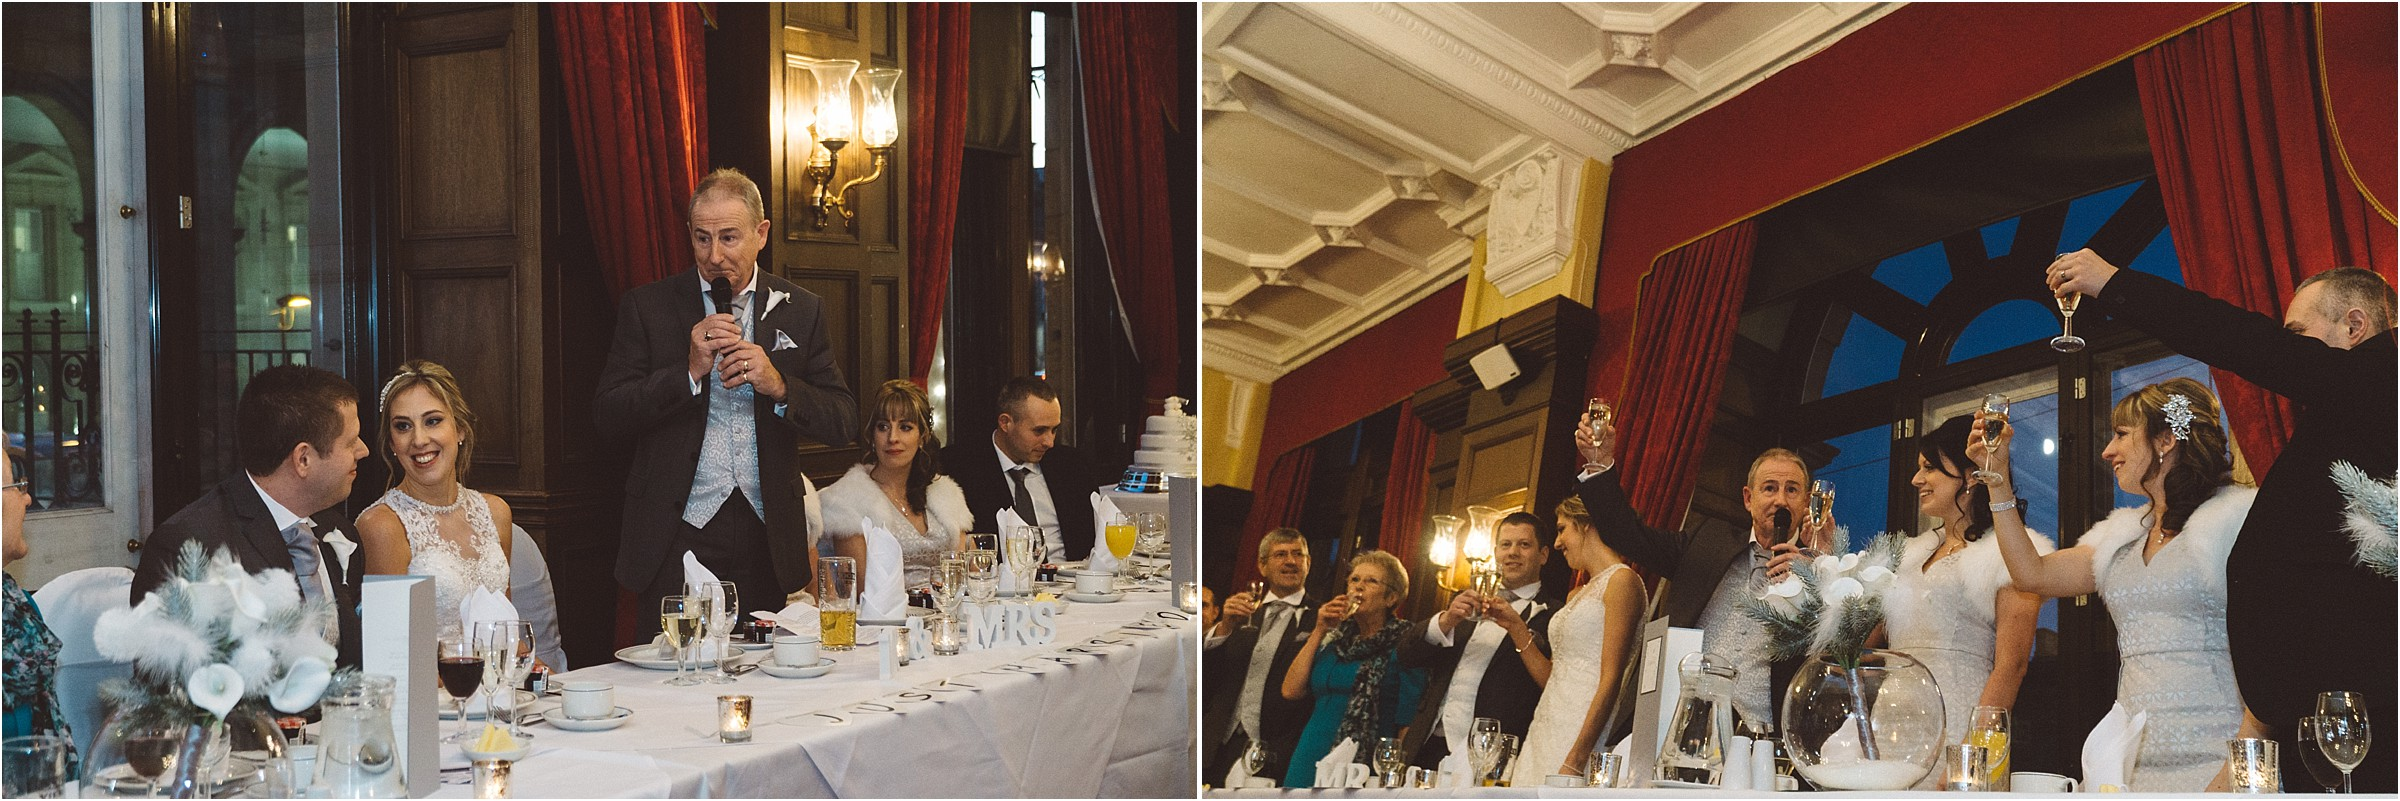 wedding photography in newcastle